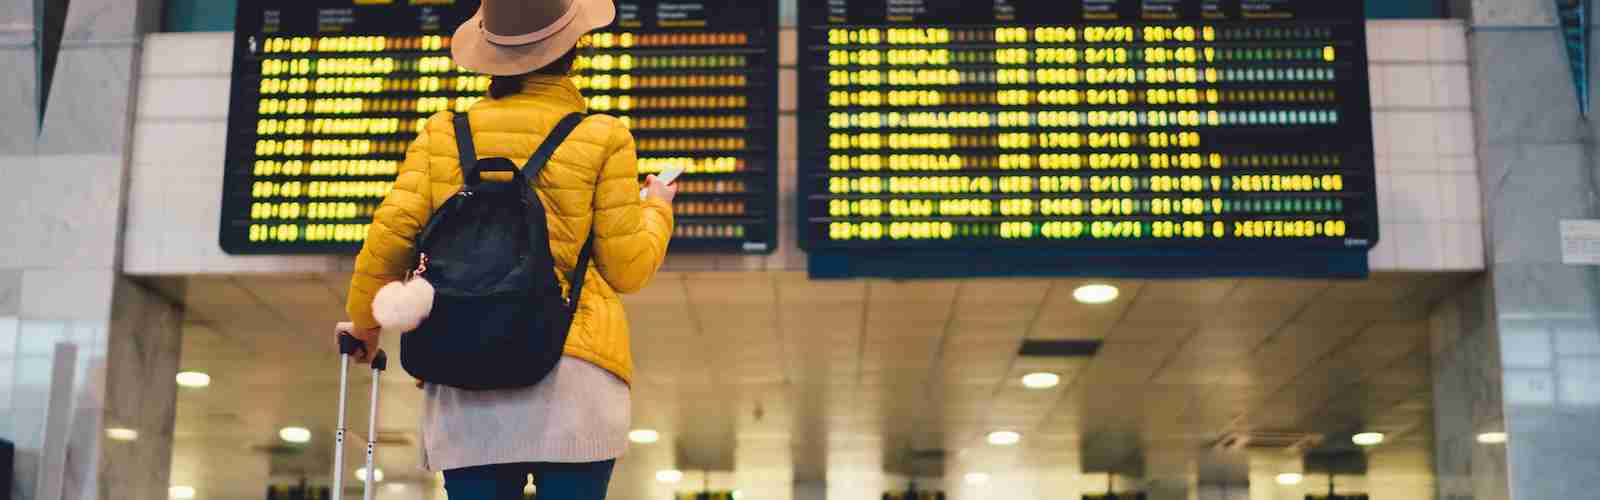 Female tourist with bag waiting airport flight stats